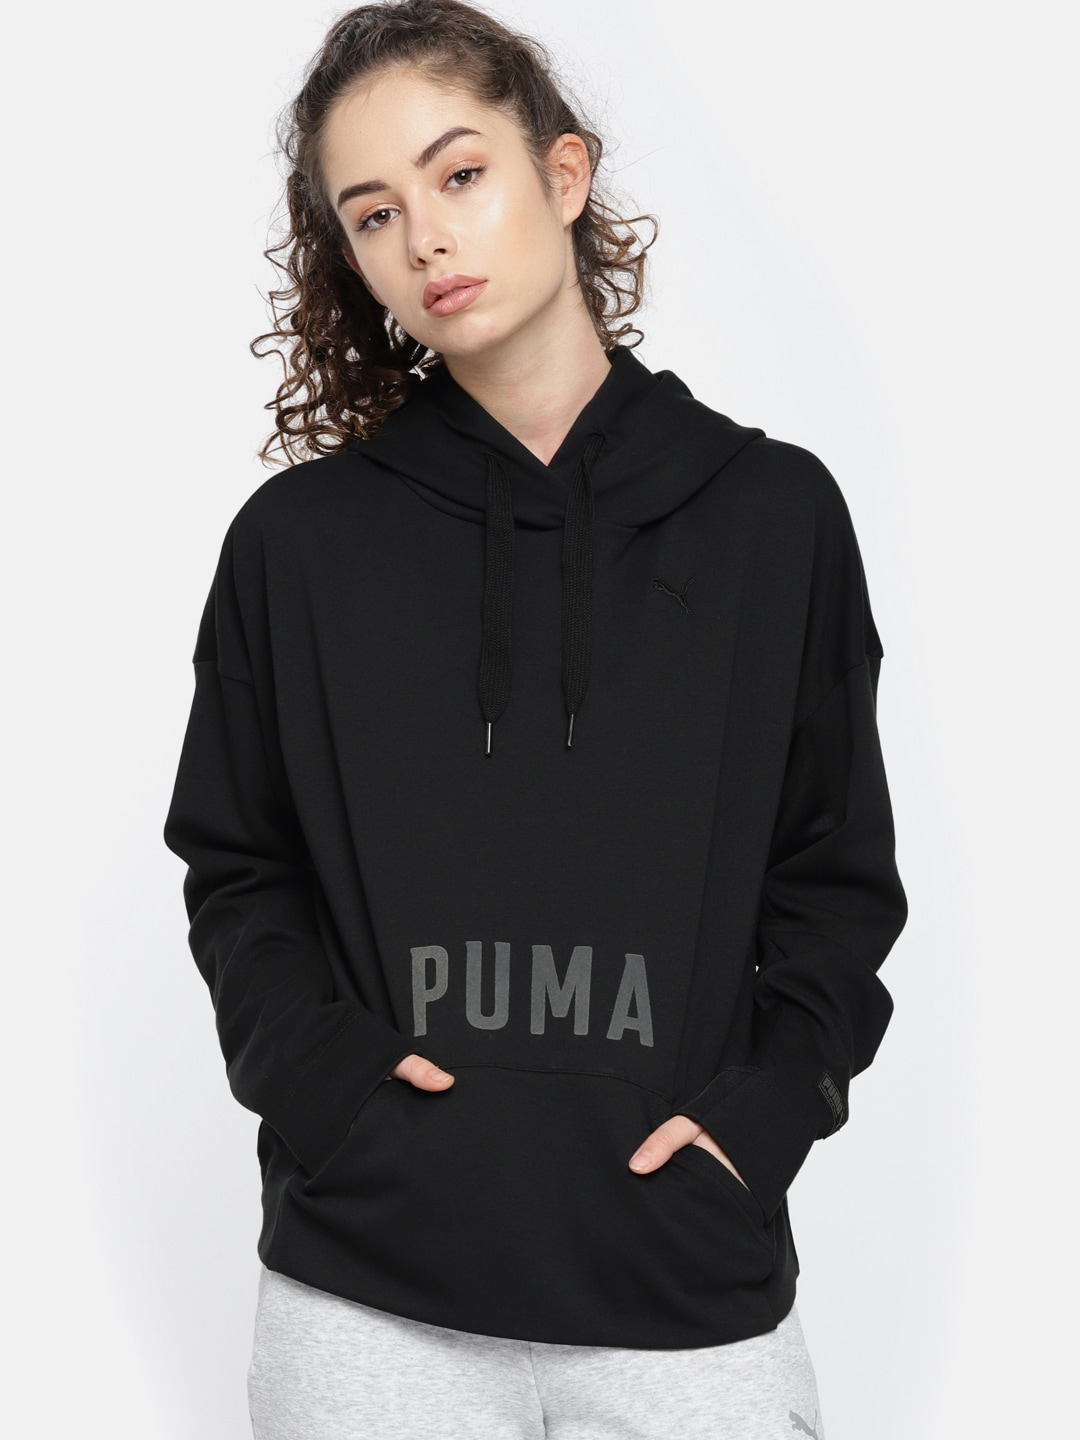 Black Fusion Women Puma Sweatshirt Hooded Printed jRL543Aq